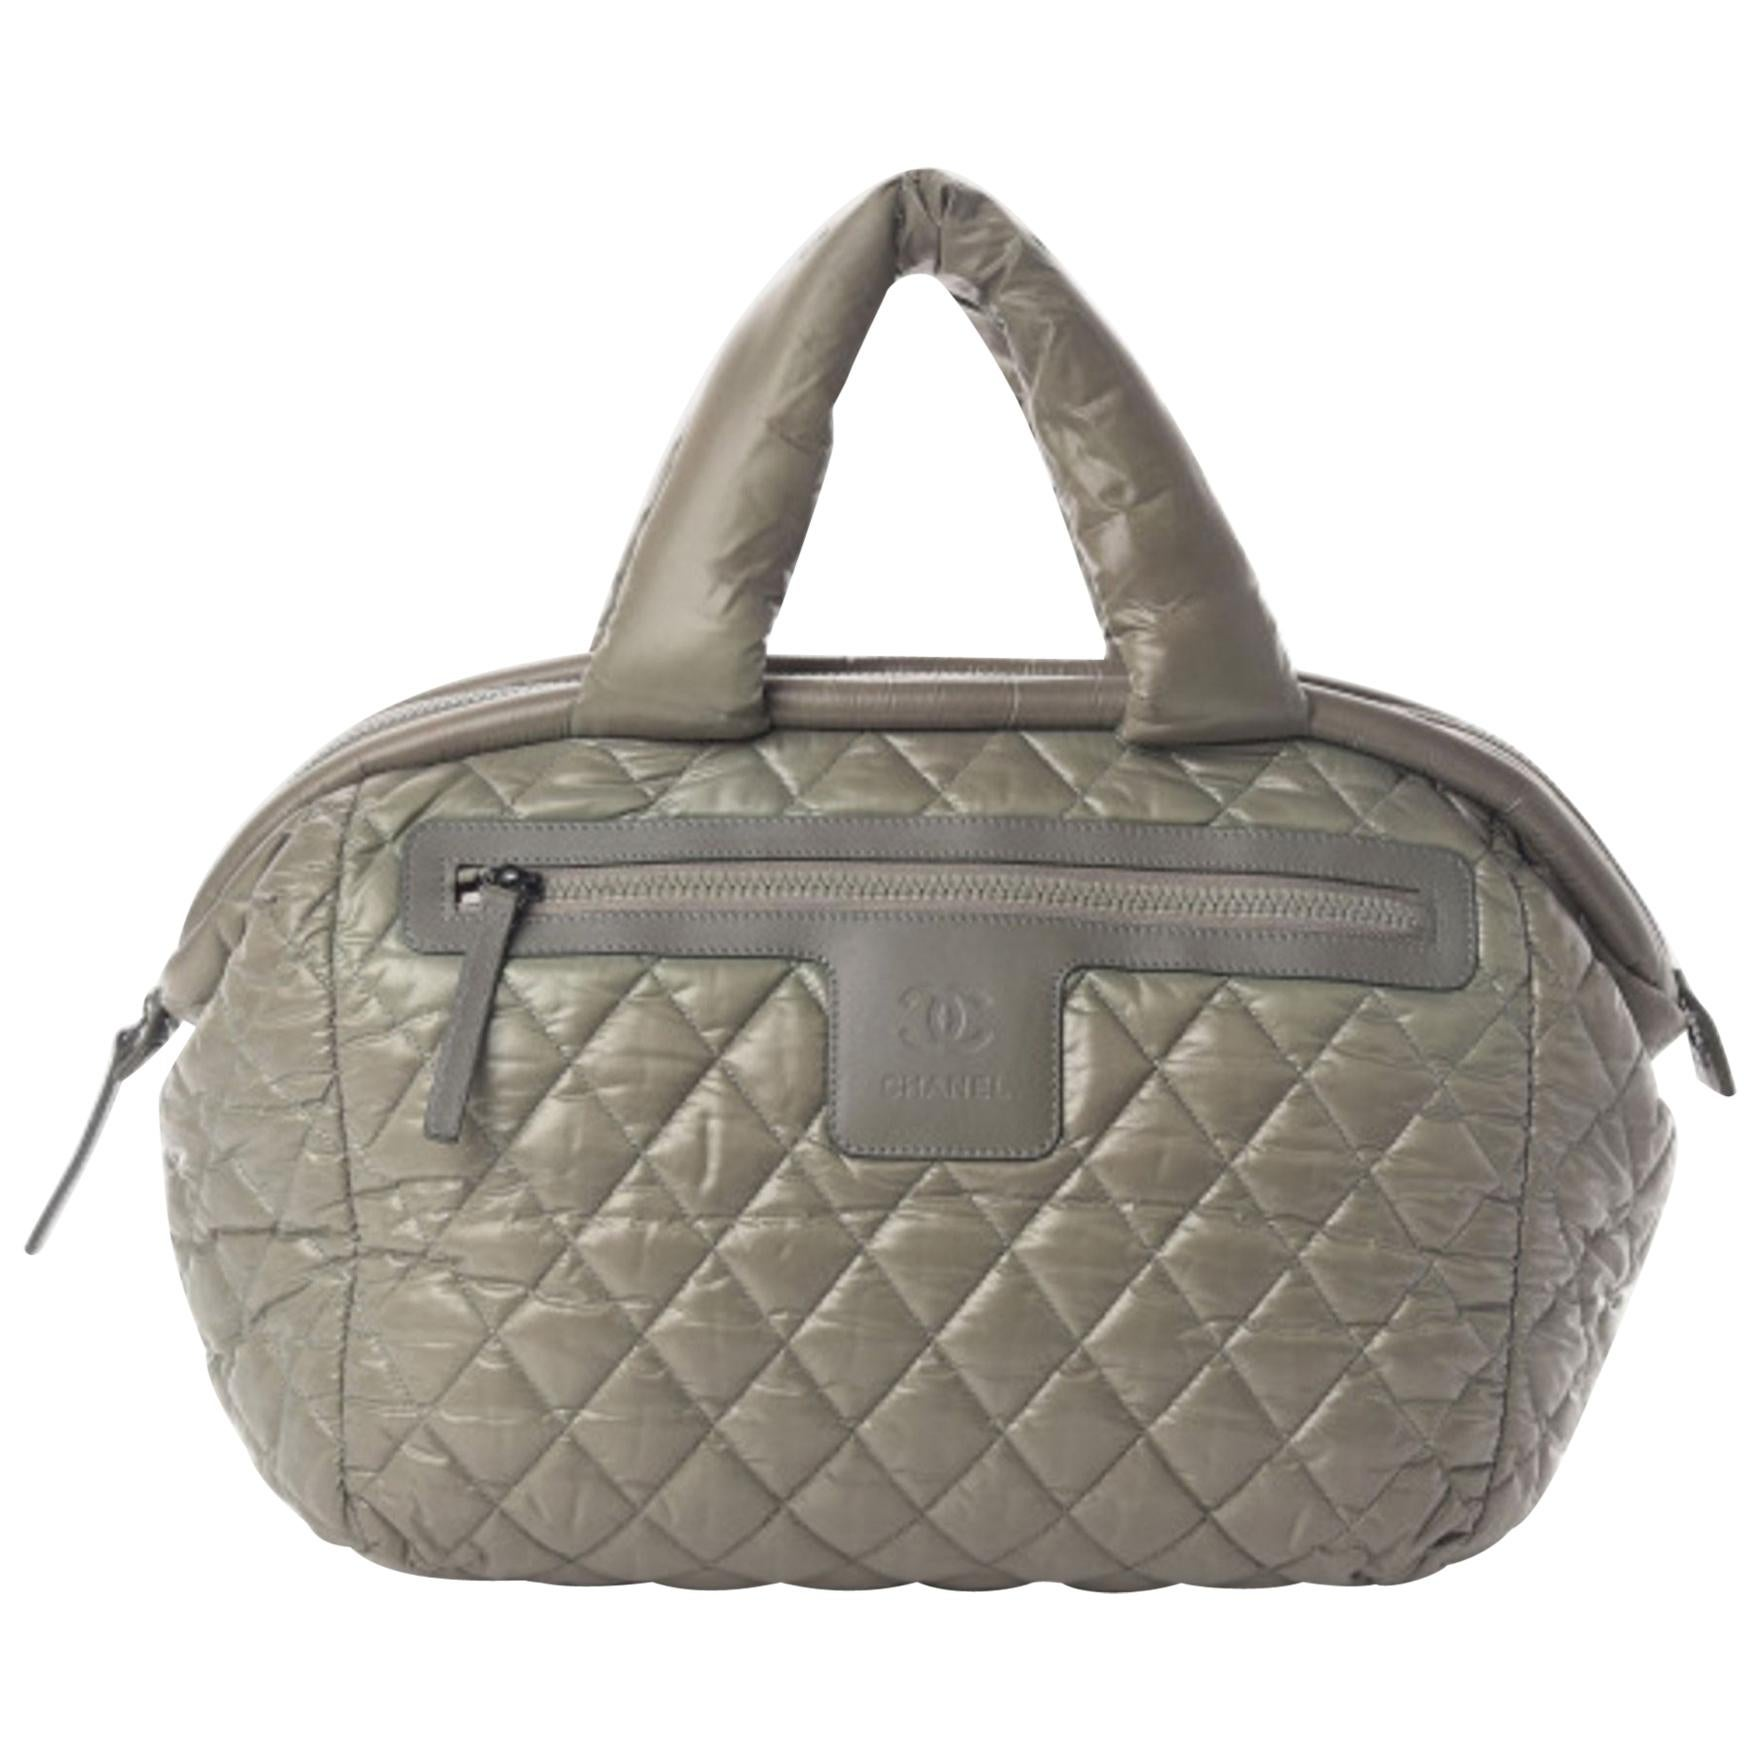 Chanel Vintage Green Nylon Quilted Coco Cocoon Bowler Tote